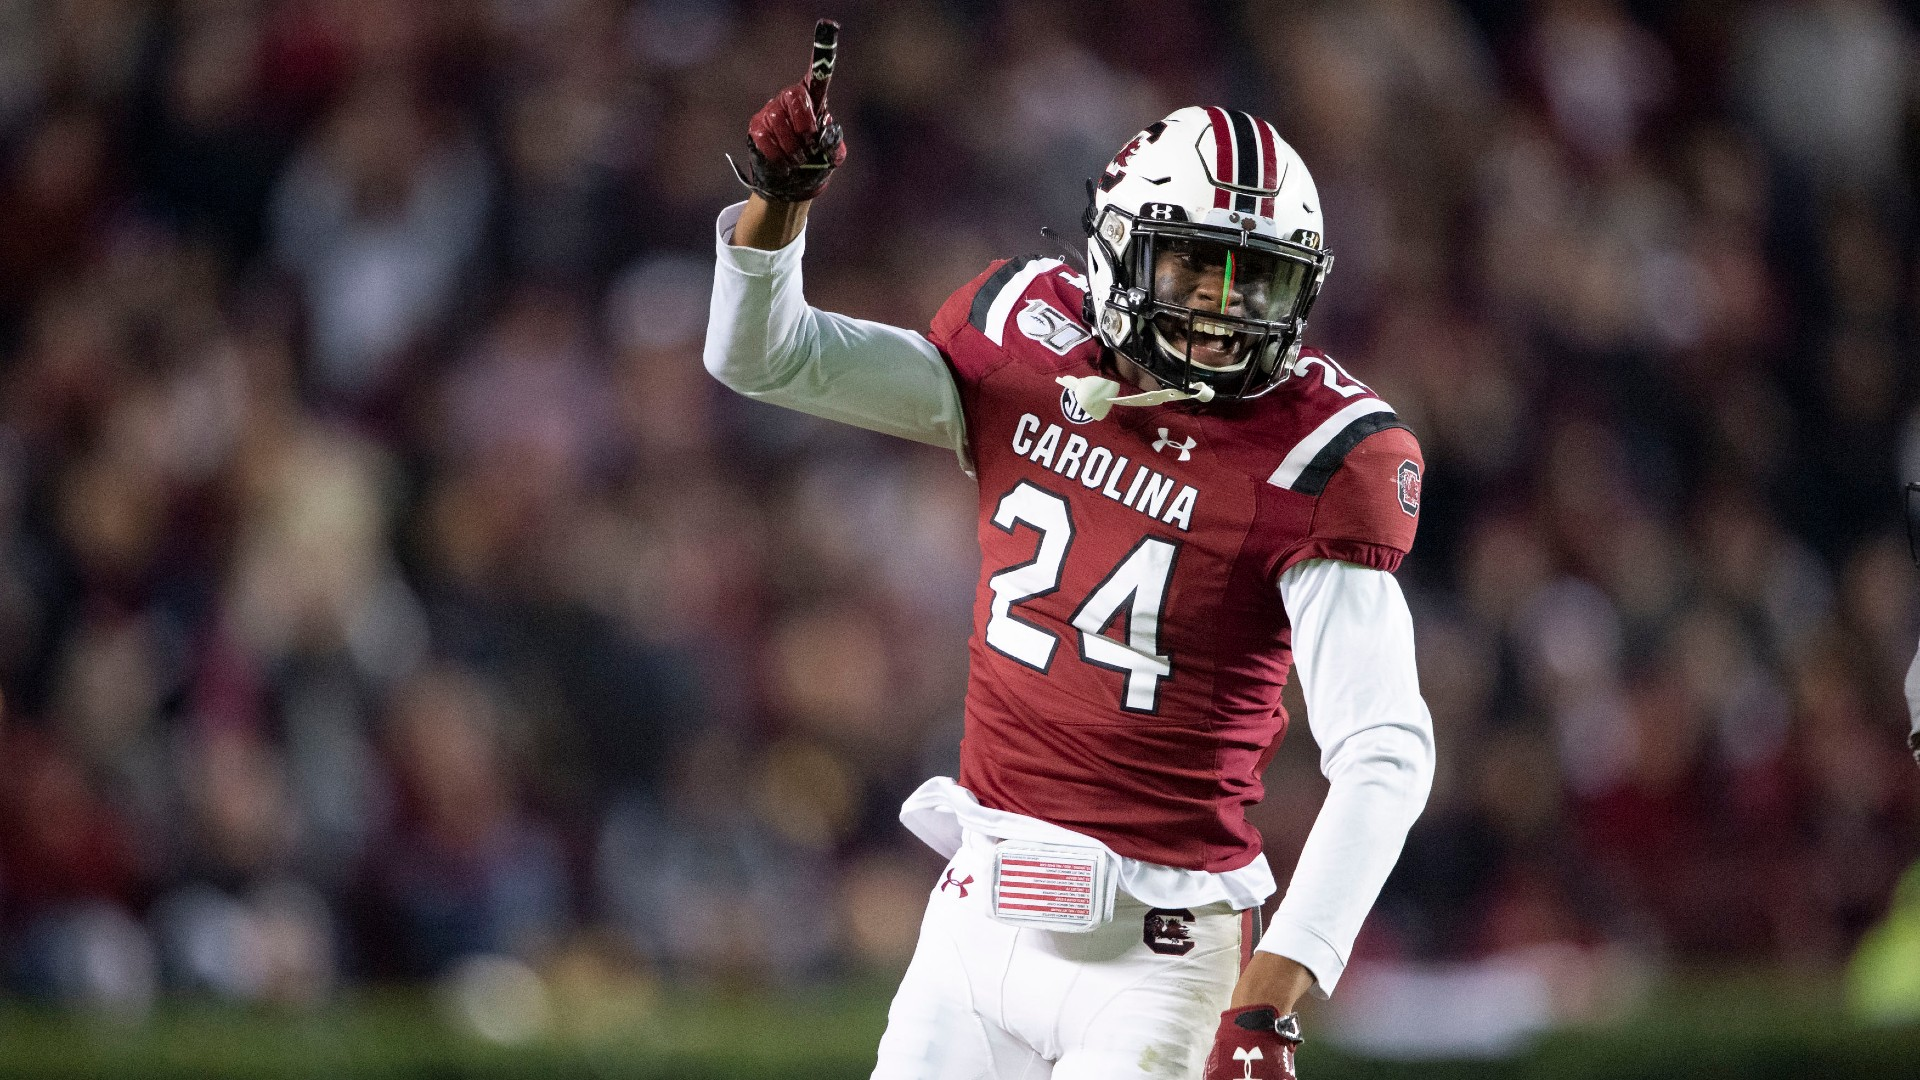 Texas A&M at South Carolina Betting Odds & Pick: Back the Aggies on the Road article feature image